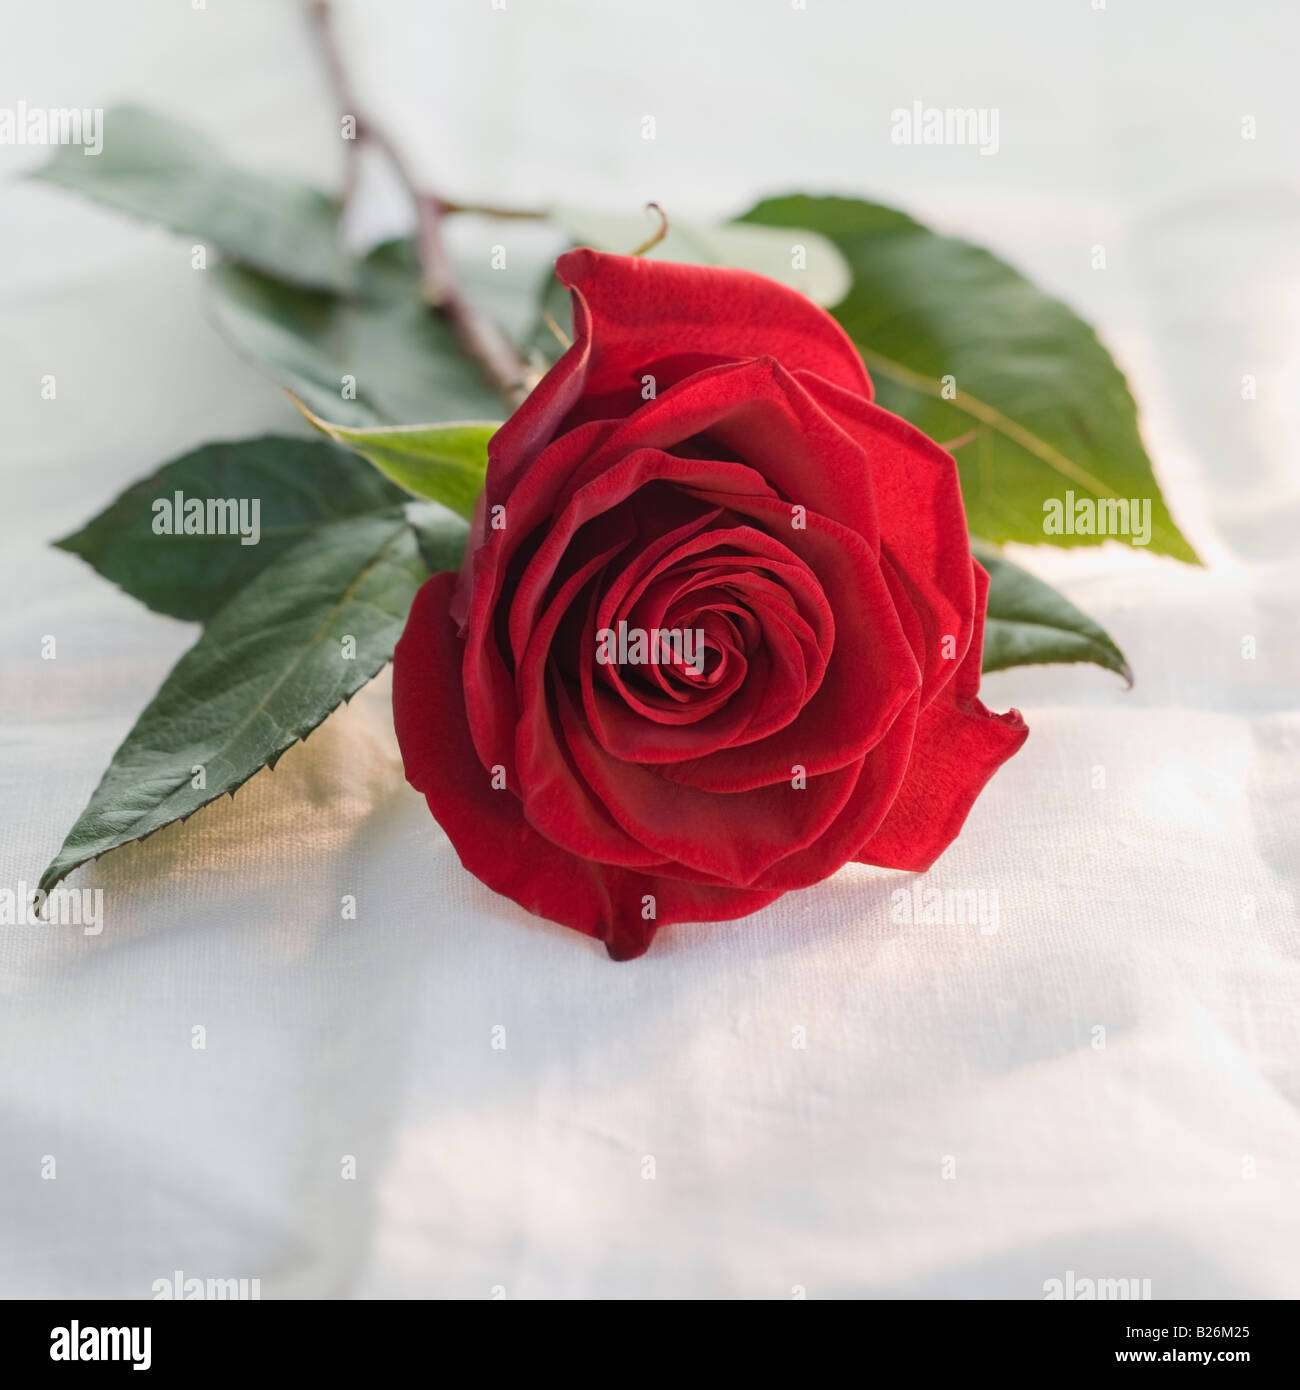 Close up of rose Photo Stock